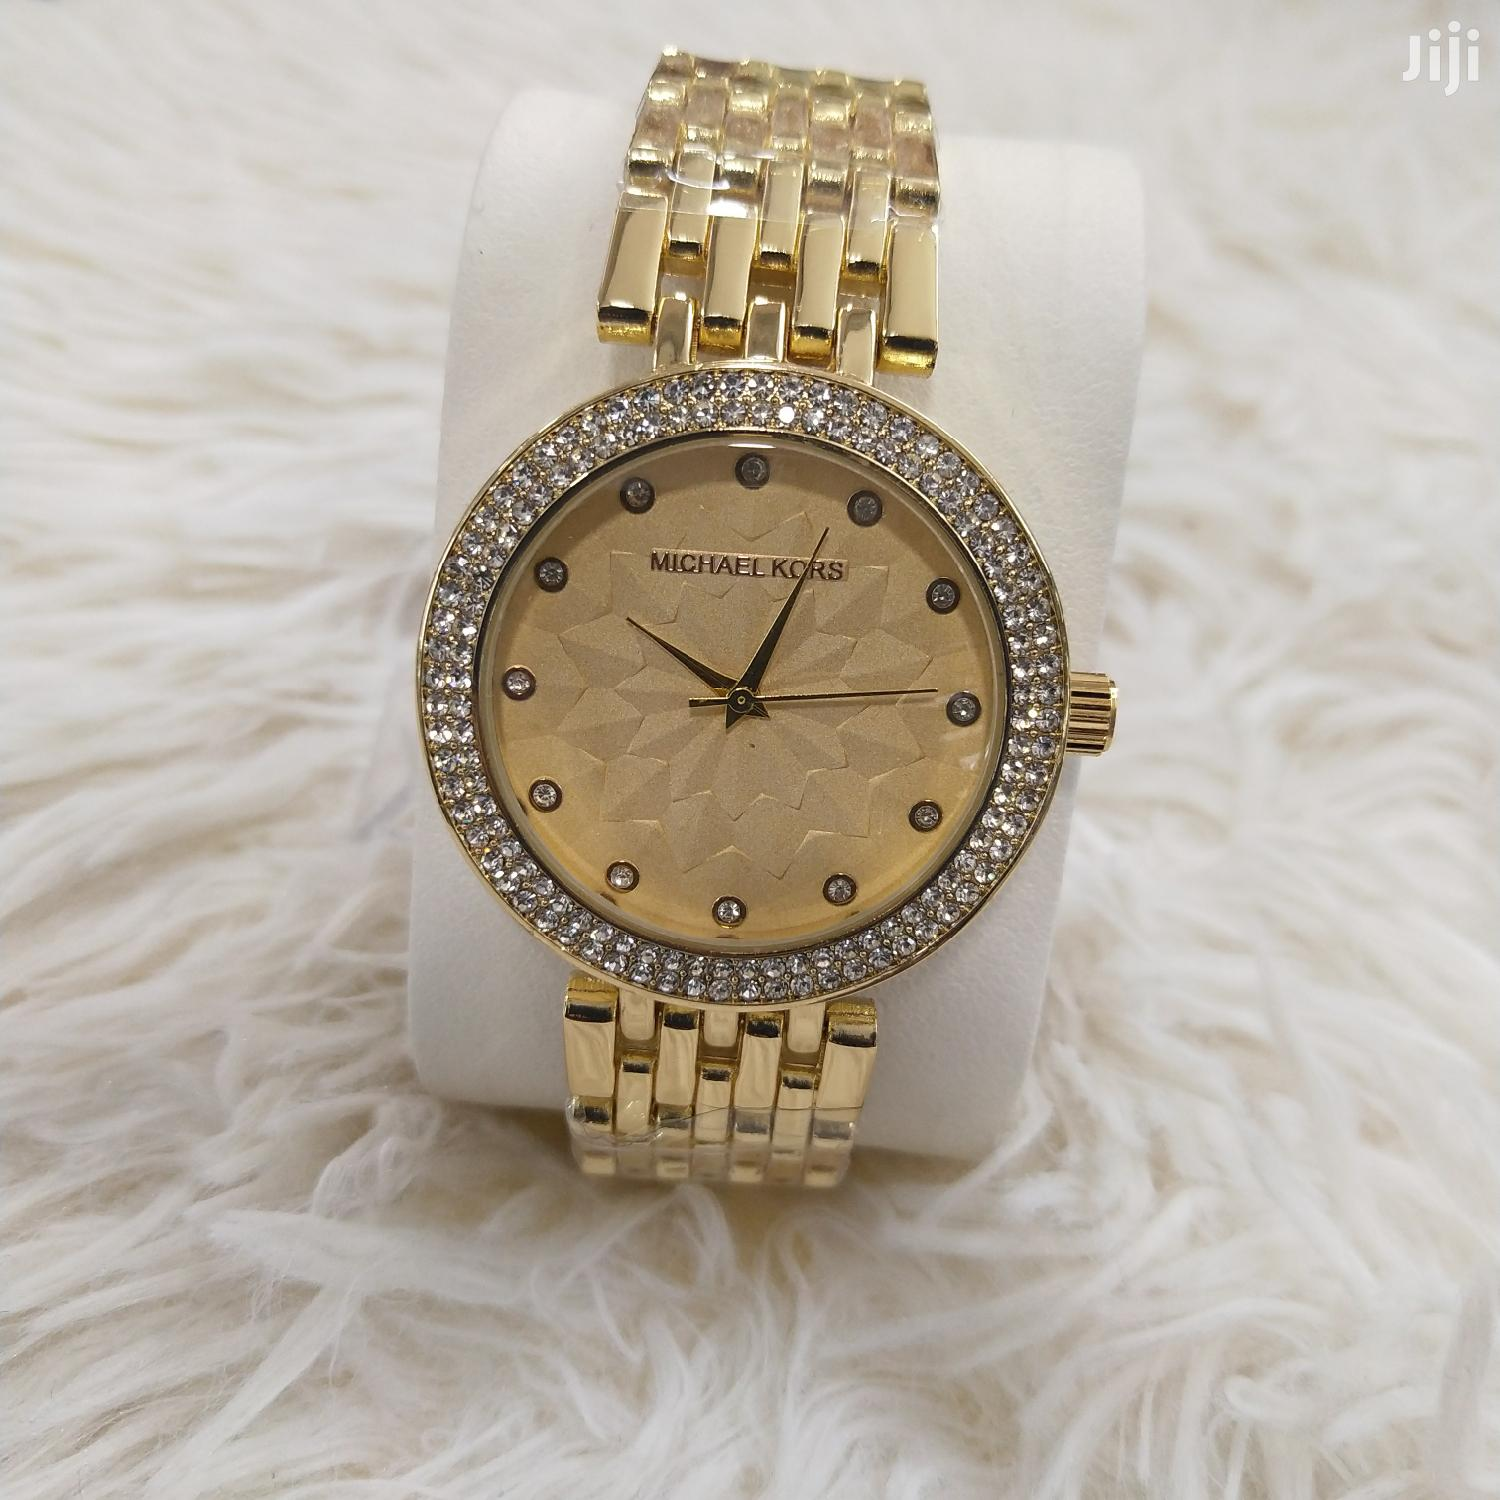 Michael Kors Ladies Watches in Stock